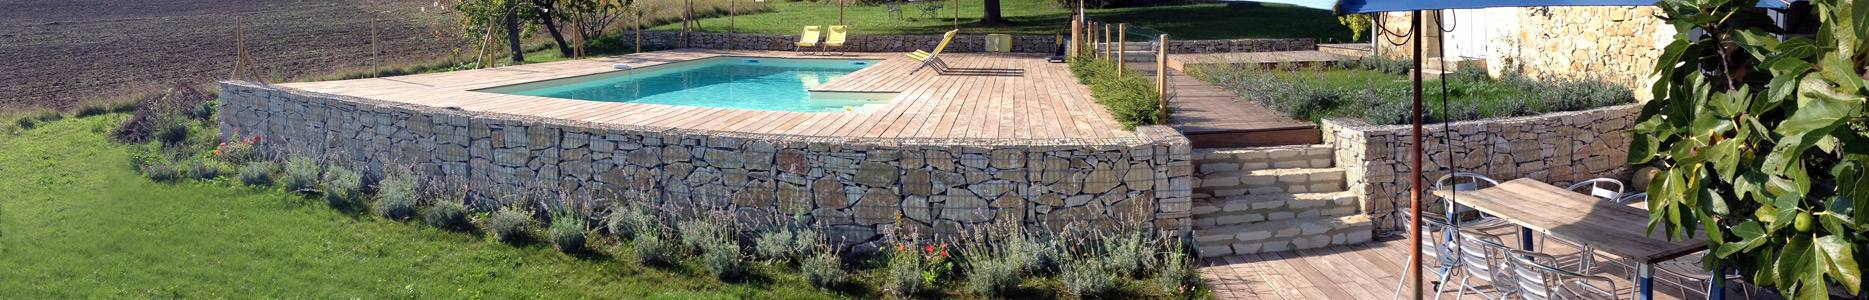 D coration jardin gabion for Decoration jardin gabion